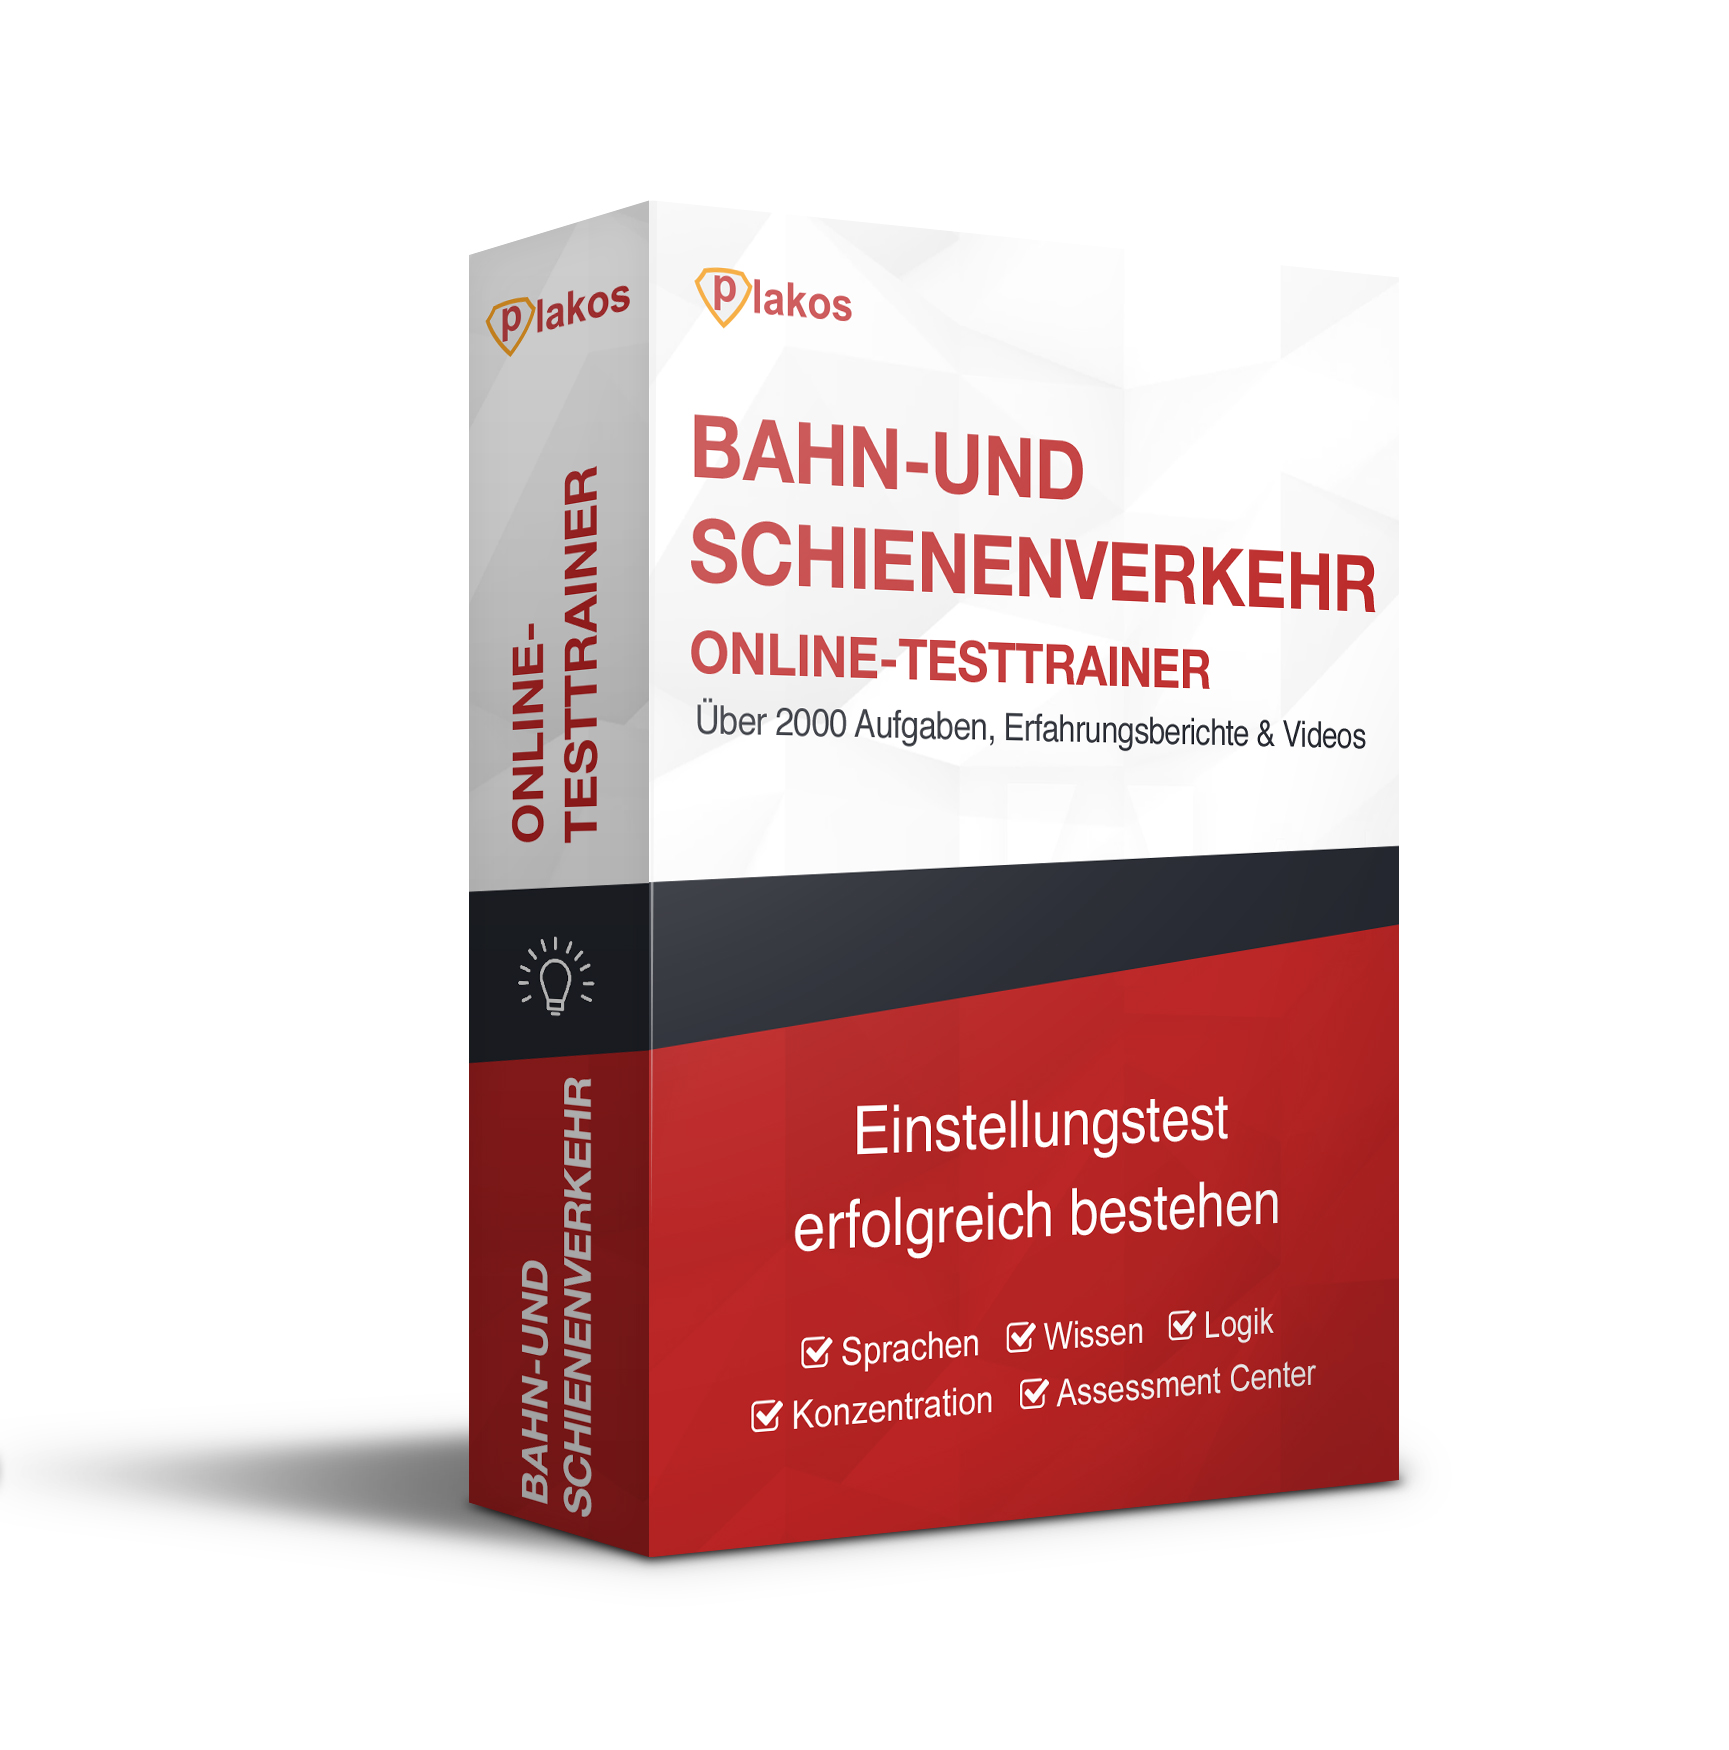 product-box-2018-bahn(1)